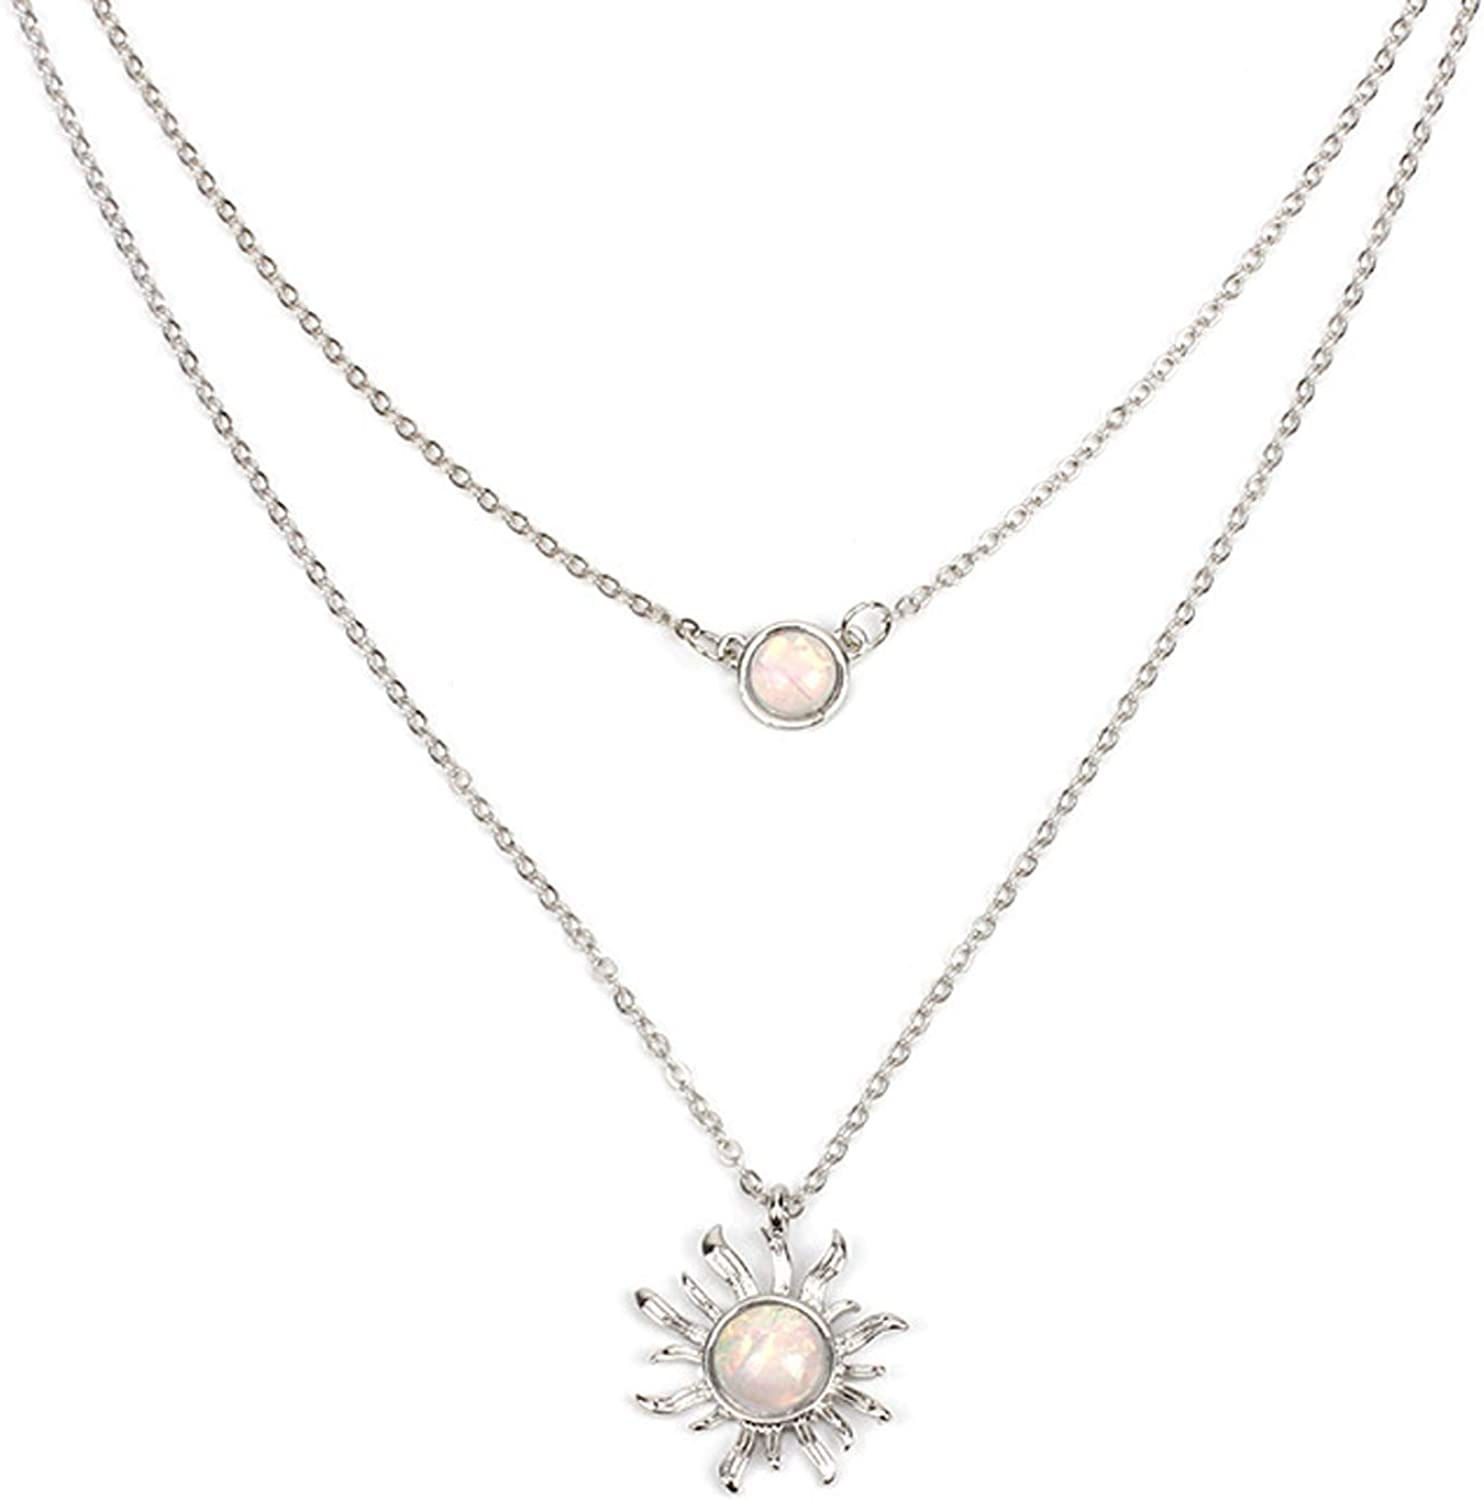 HUNO Double Chains Moon and Sun Layered Choker Necklace Sunflower Opal Pendant Necklace Gift for Women